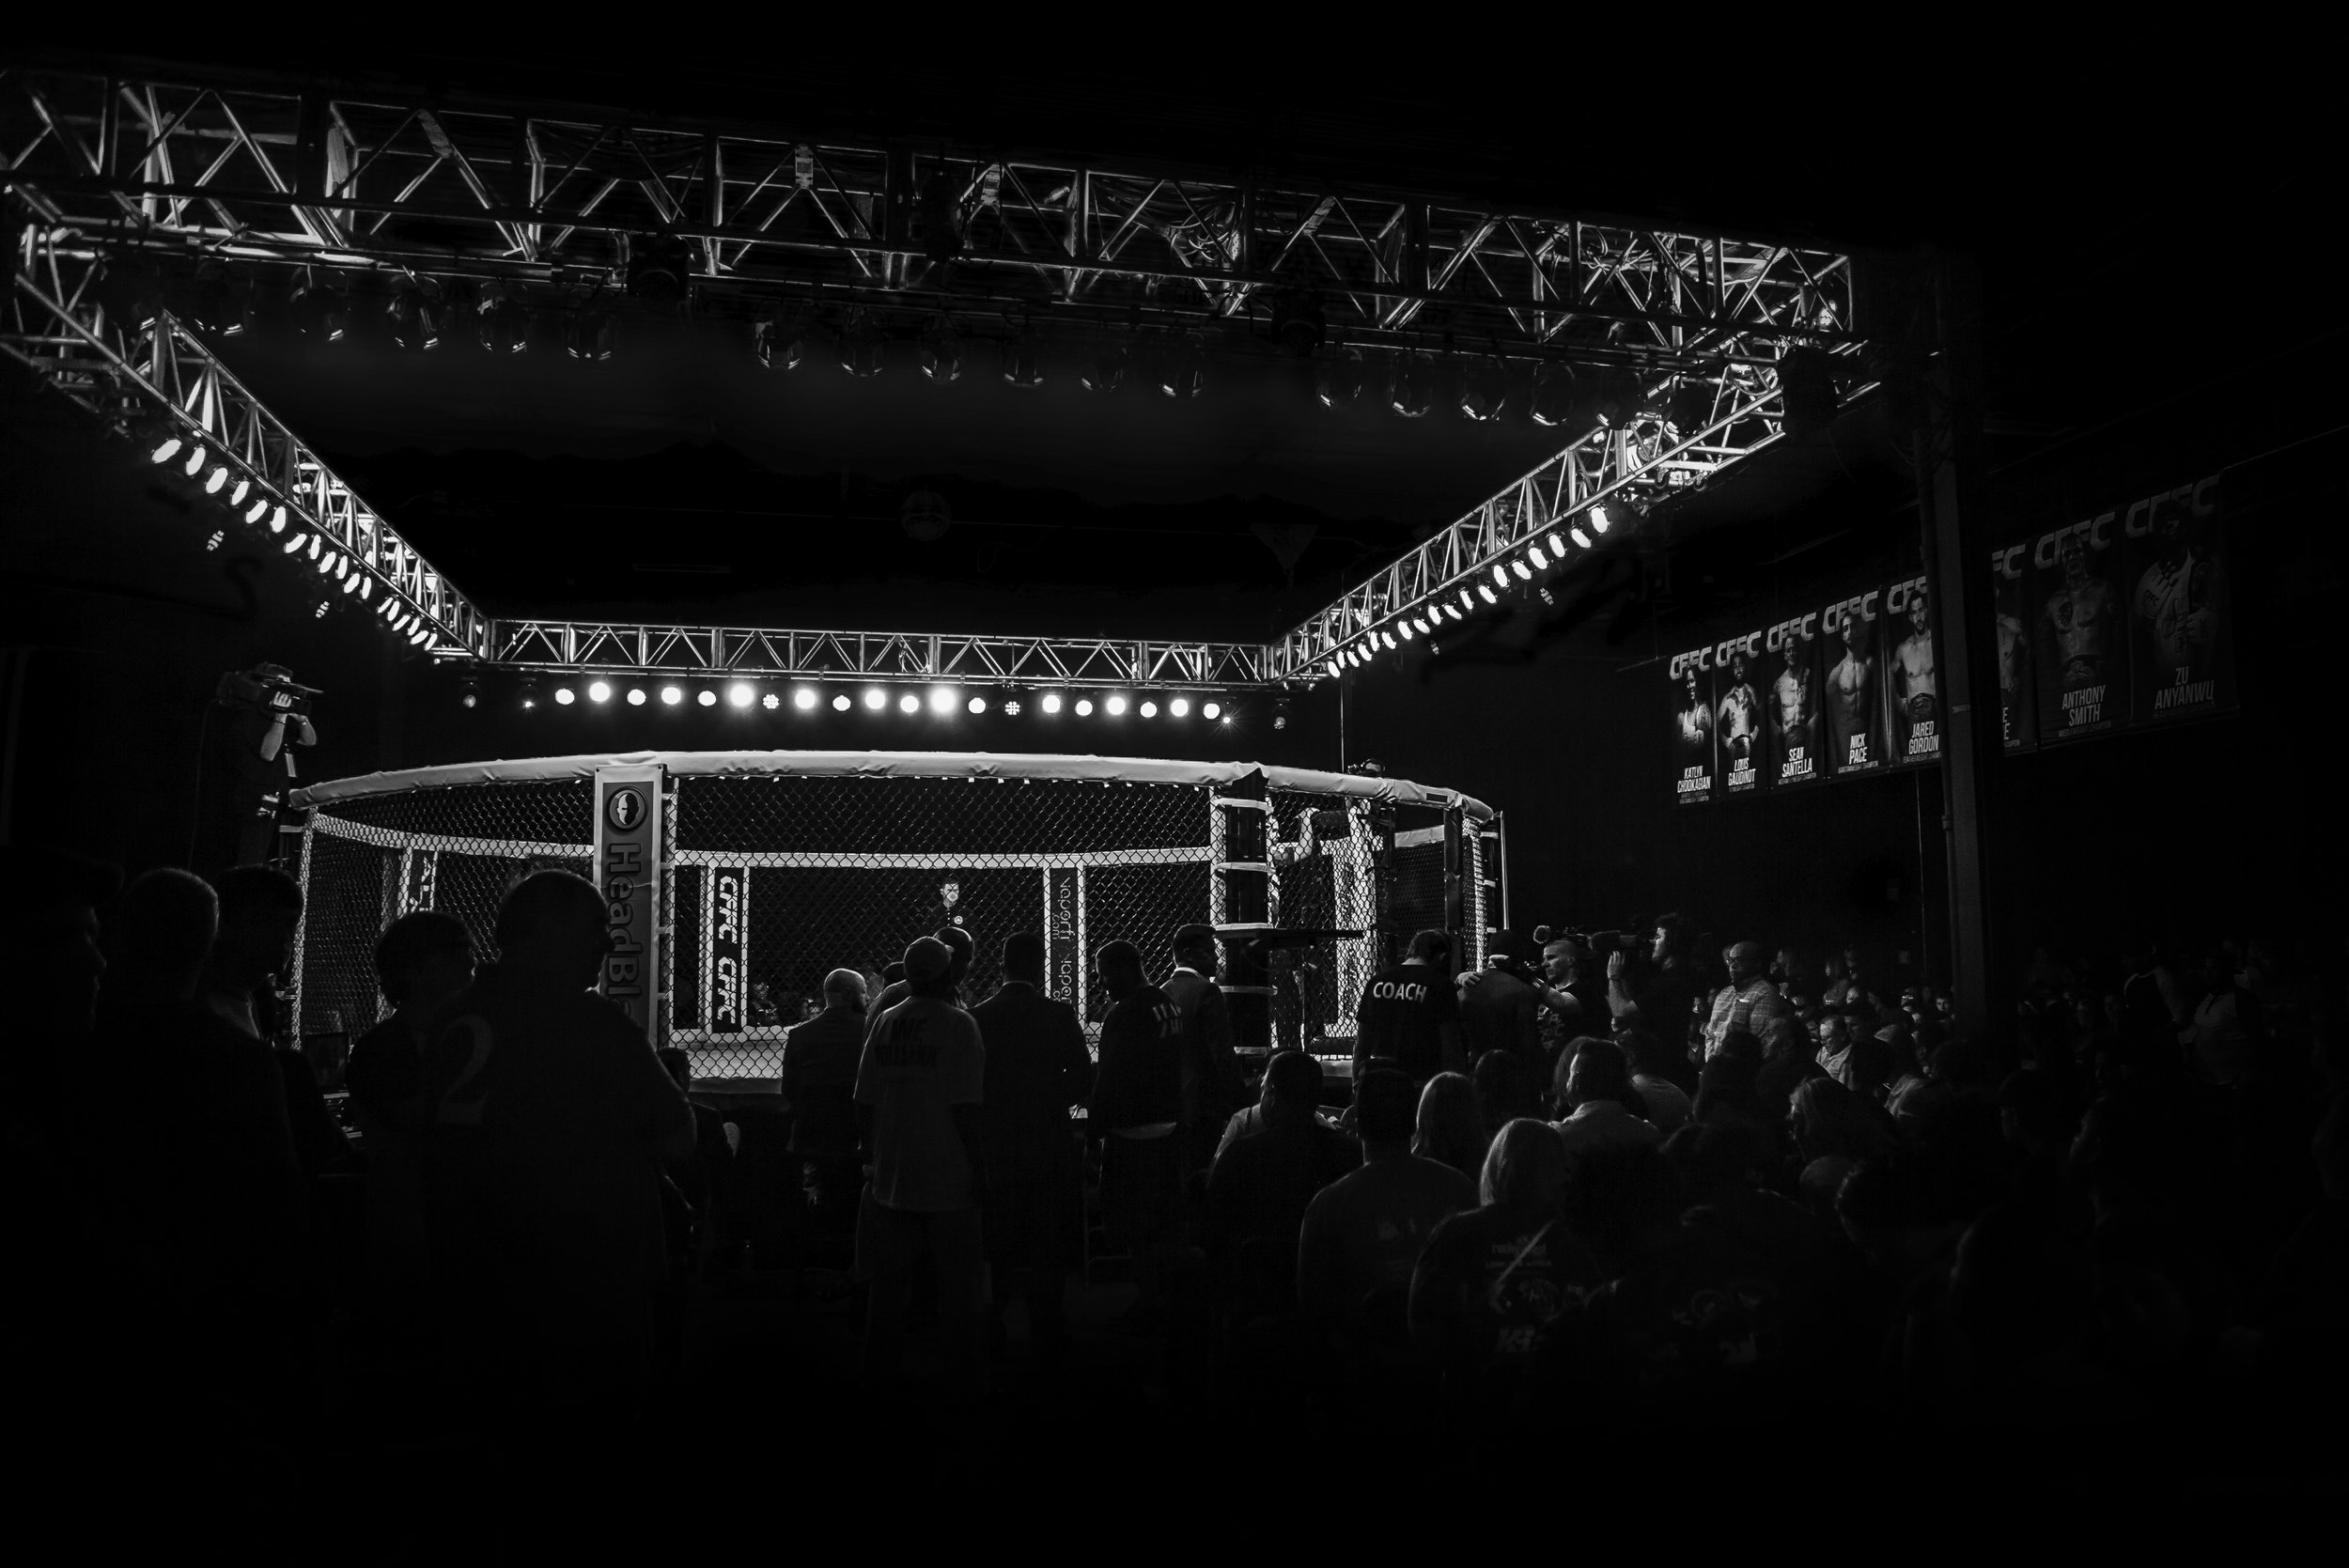 The Gold Standard in Regional MMA - One of the most exciting live spectacles around, mixed-martial-arts (MMA) is widely considered to be one of the fastest growing sports in the world.Cage Fury Fighting Championships (also known as CFFC) is the best in regional MMA, putting on shows in New Jersey, Pennsylvania, Florida, California, Ohio, and Washington.